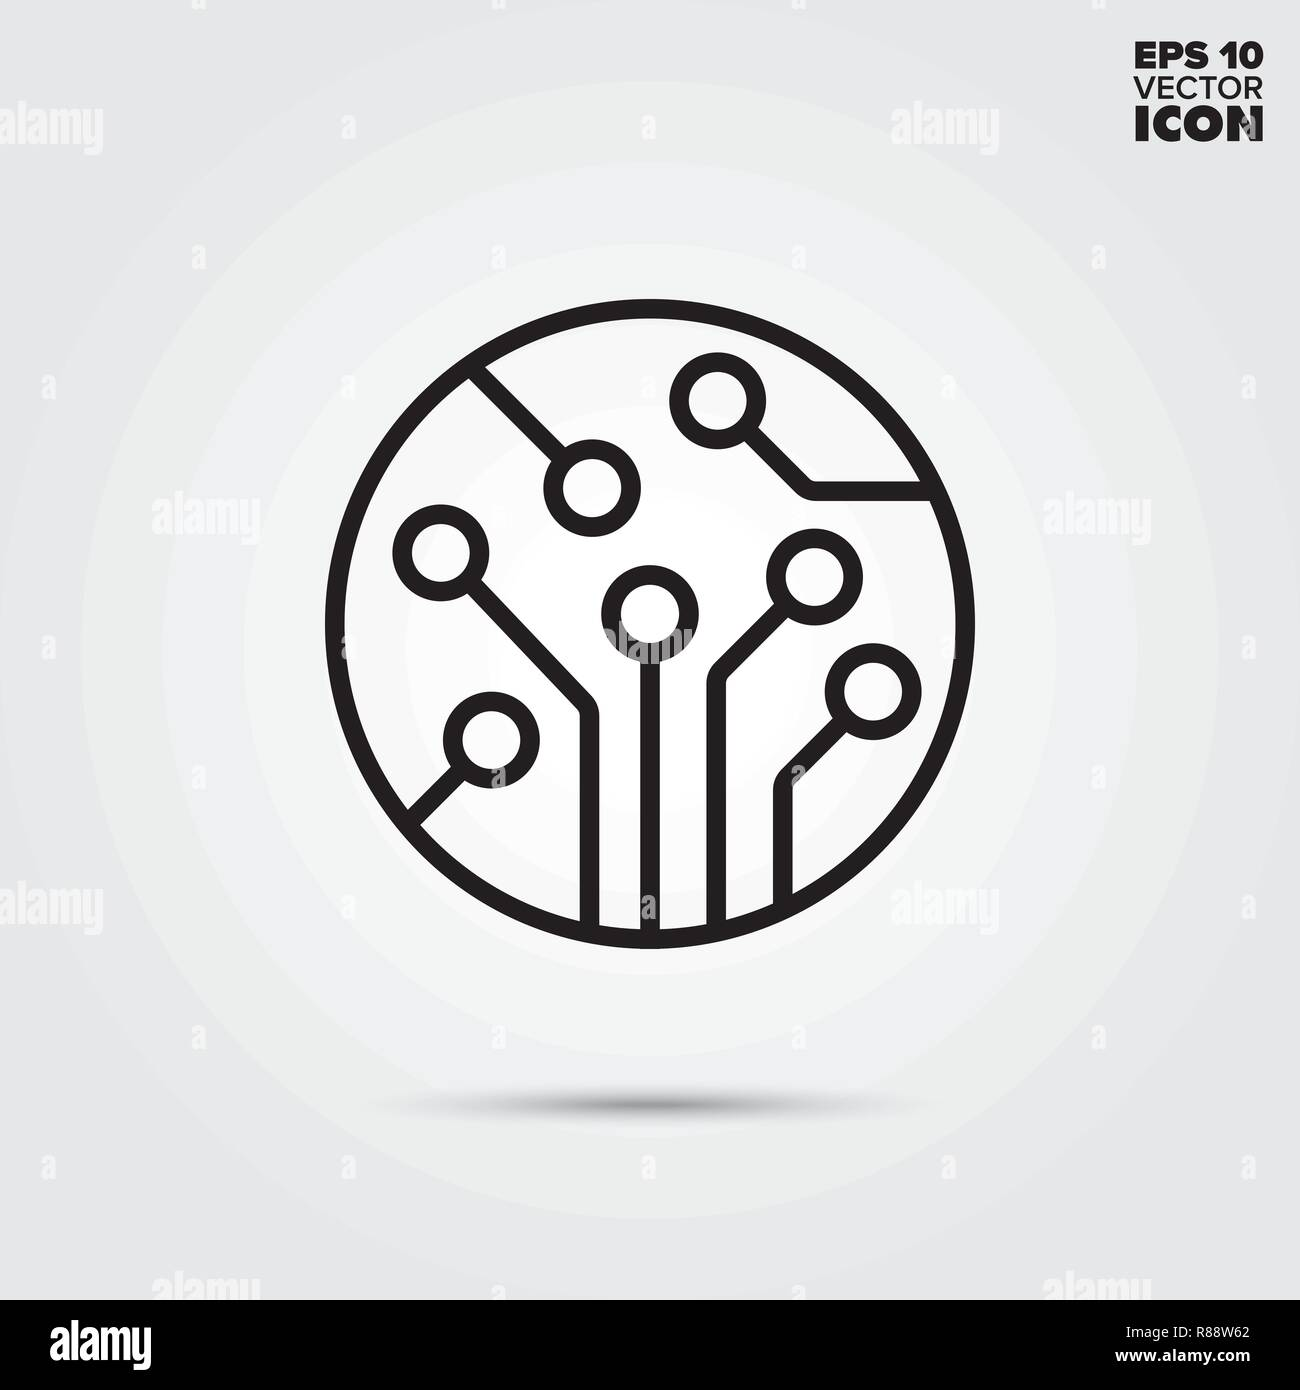 Electronic Circuit Vector Vectors Stock Photos Symbols Commonly Used Line Icon Component Symbol Image